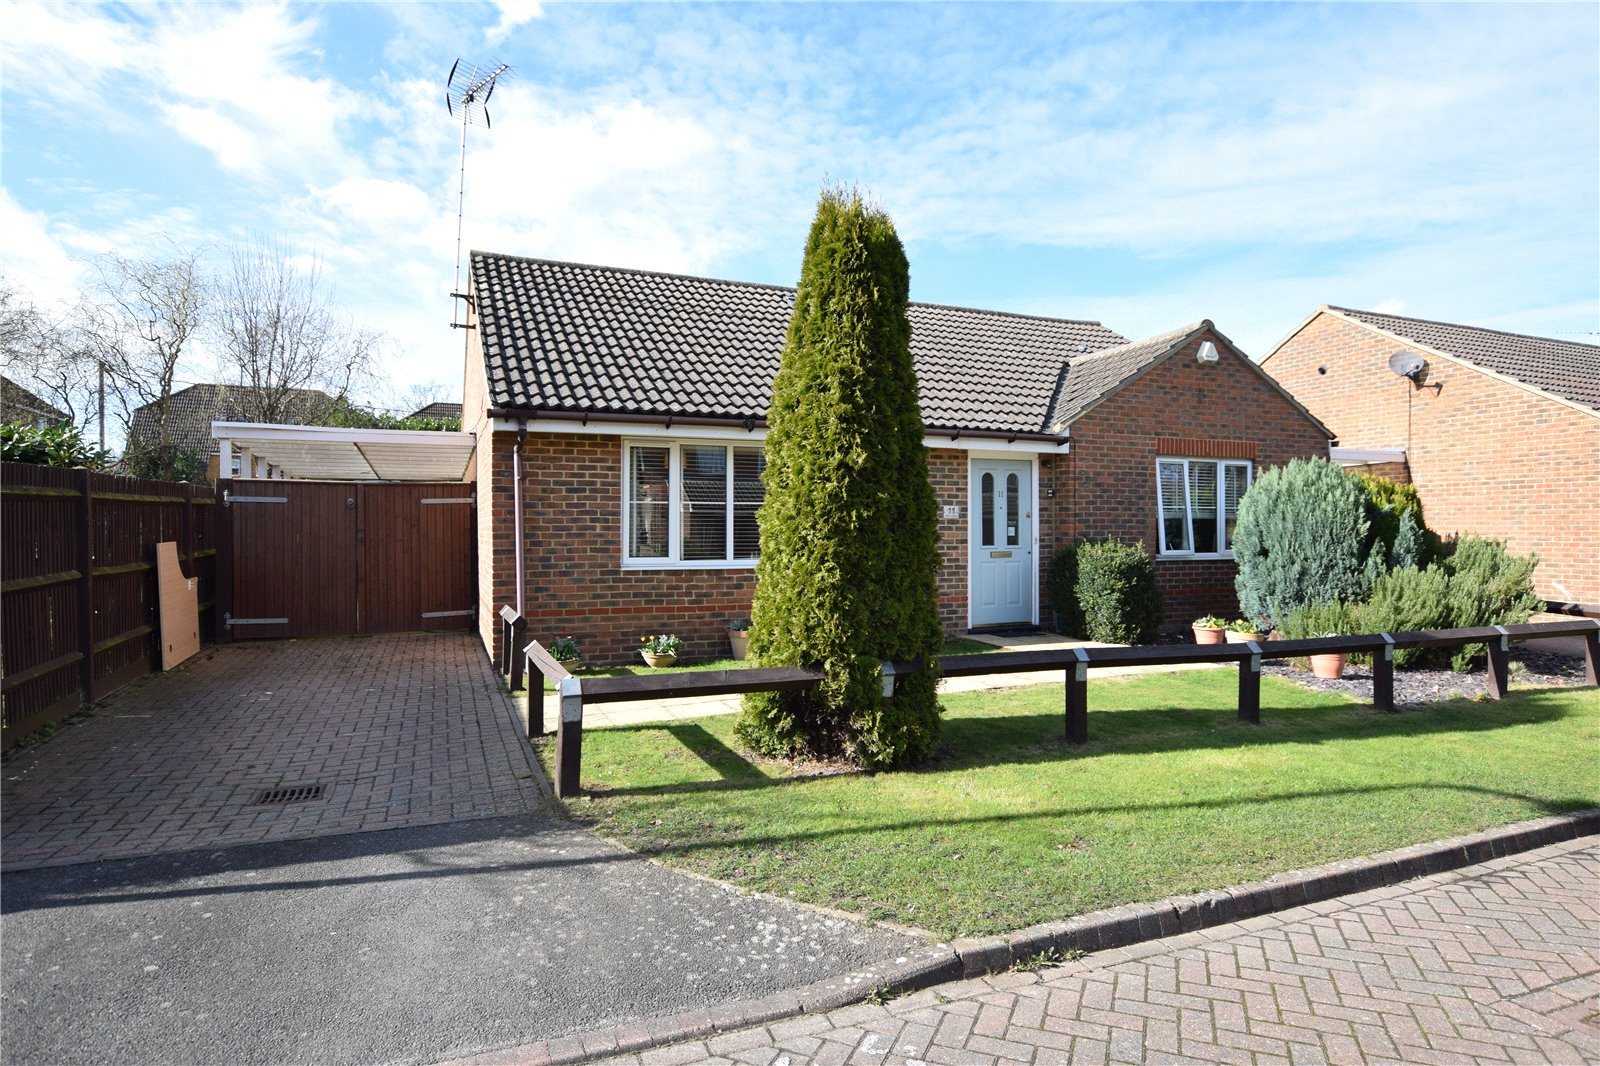 4 Bedrooms Detached Bungalow for sale in Anders Corner, Bracknell, Berkshire, RG42